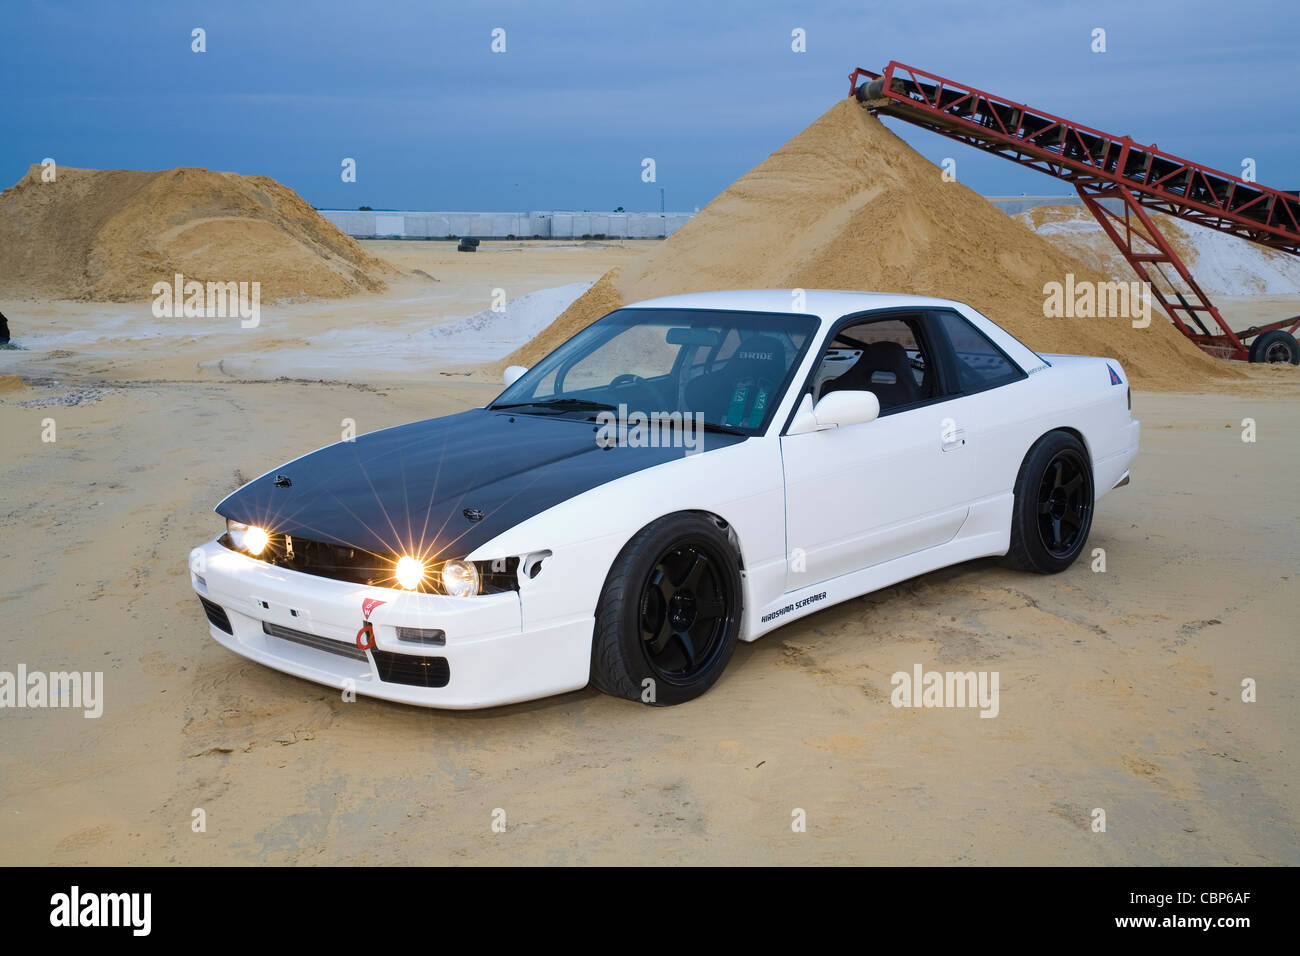 Charmant Boy Racer Style Nissan 180SX Silvia S13 Modified And Custom Car  Stock Image